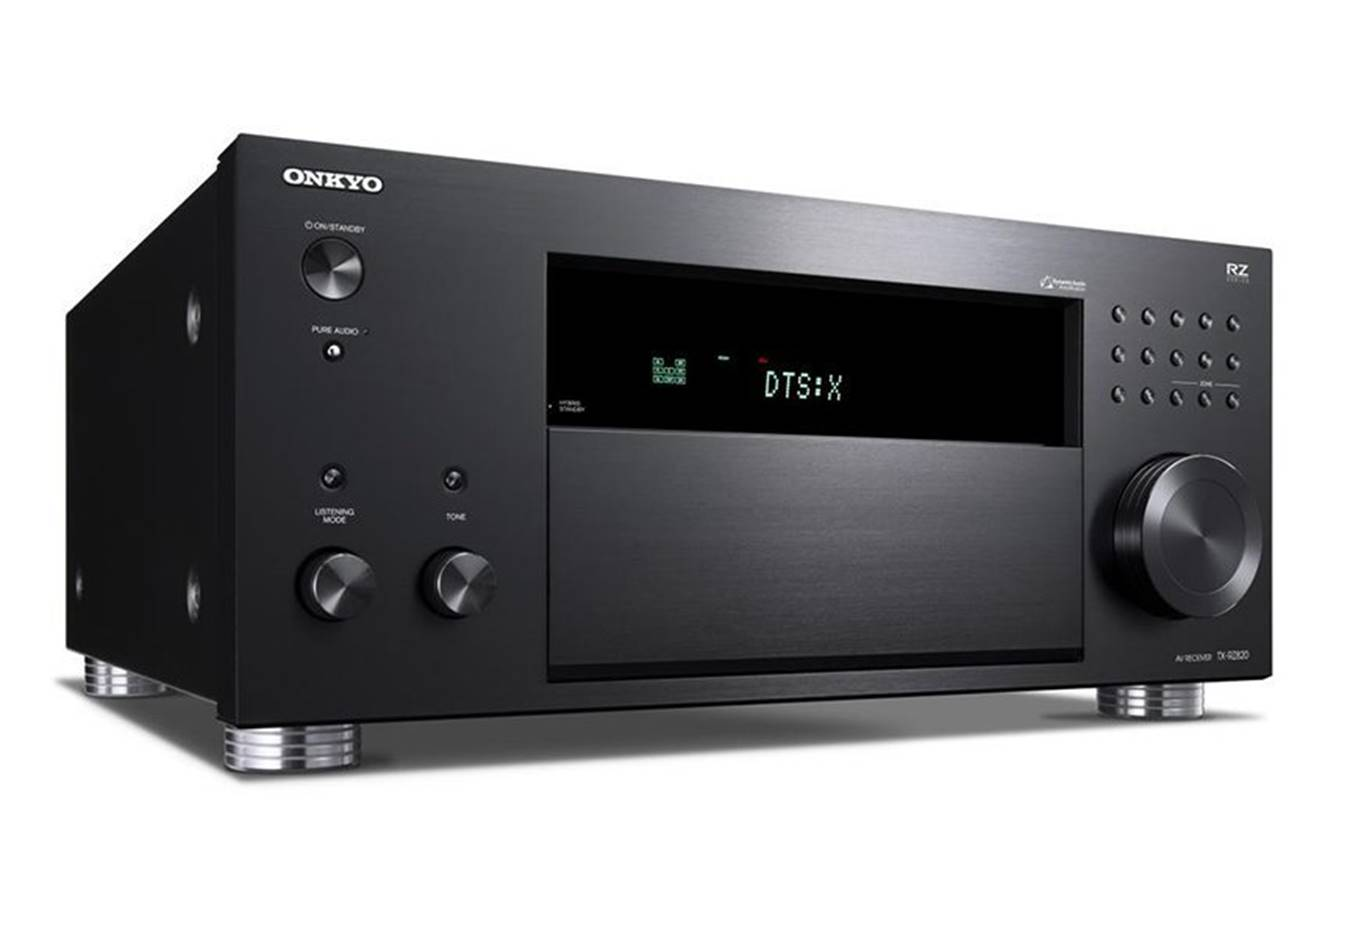 Onkyo TX-RZ820 Surround Sound Receiver